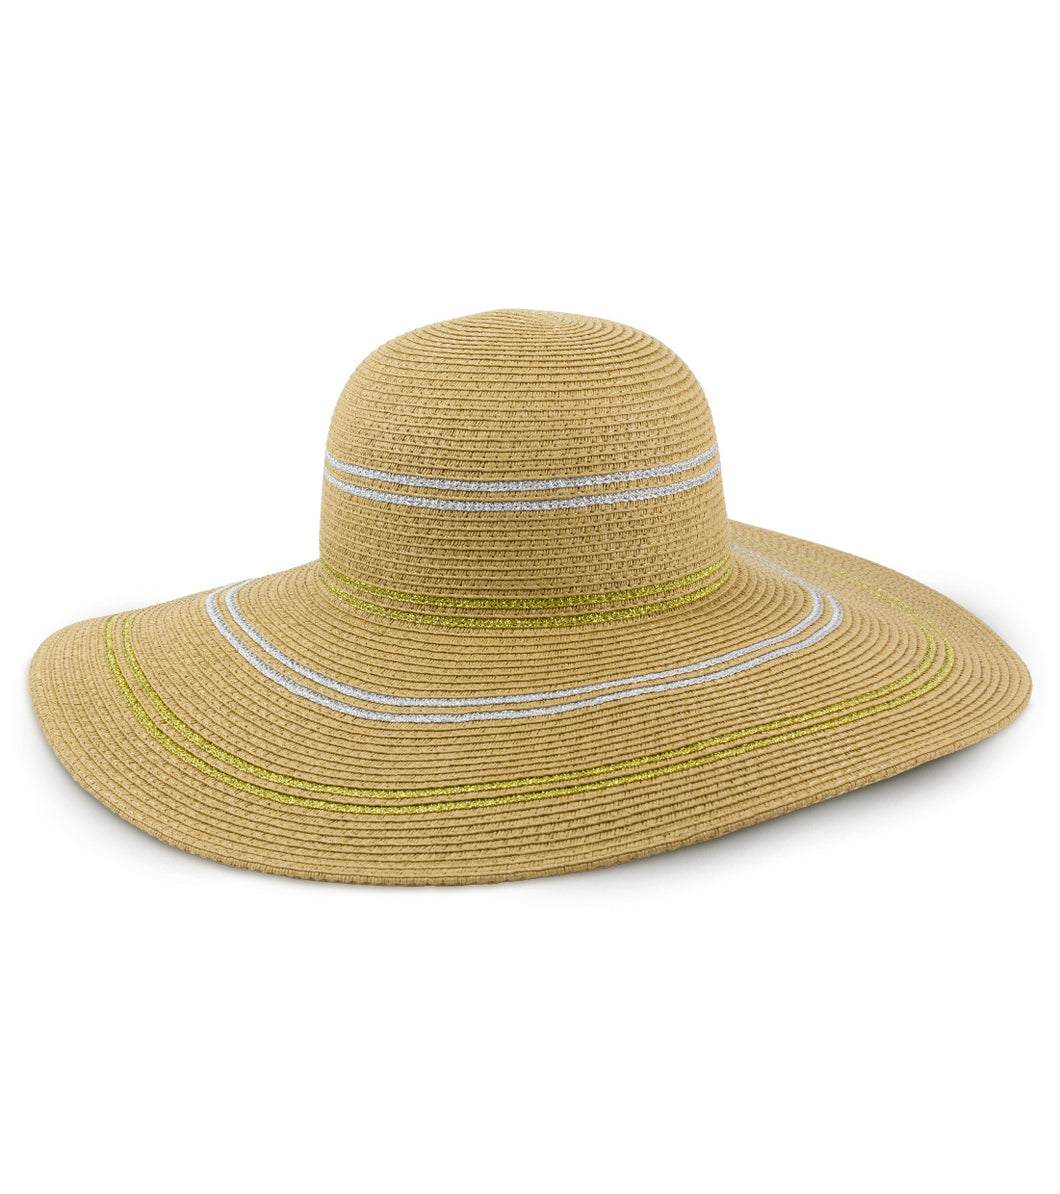 Striped Metallic Straw Floppy Hat - Just Jamie